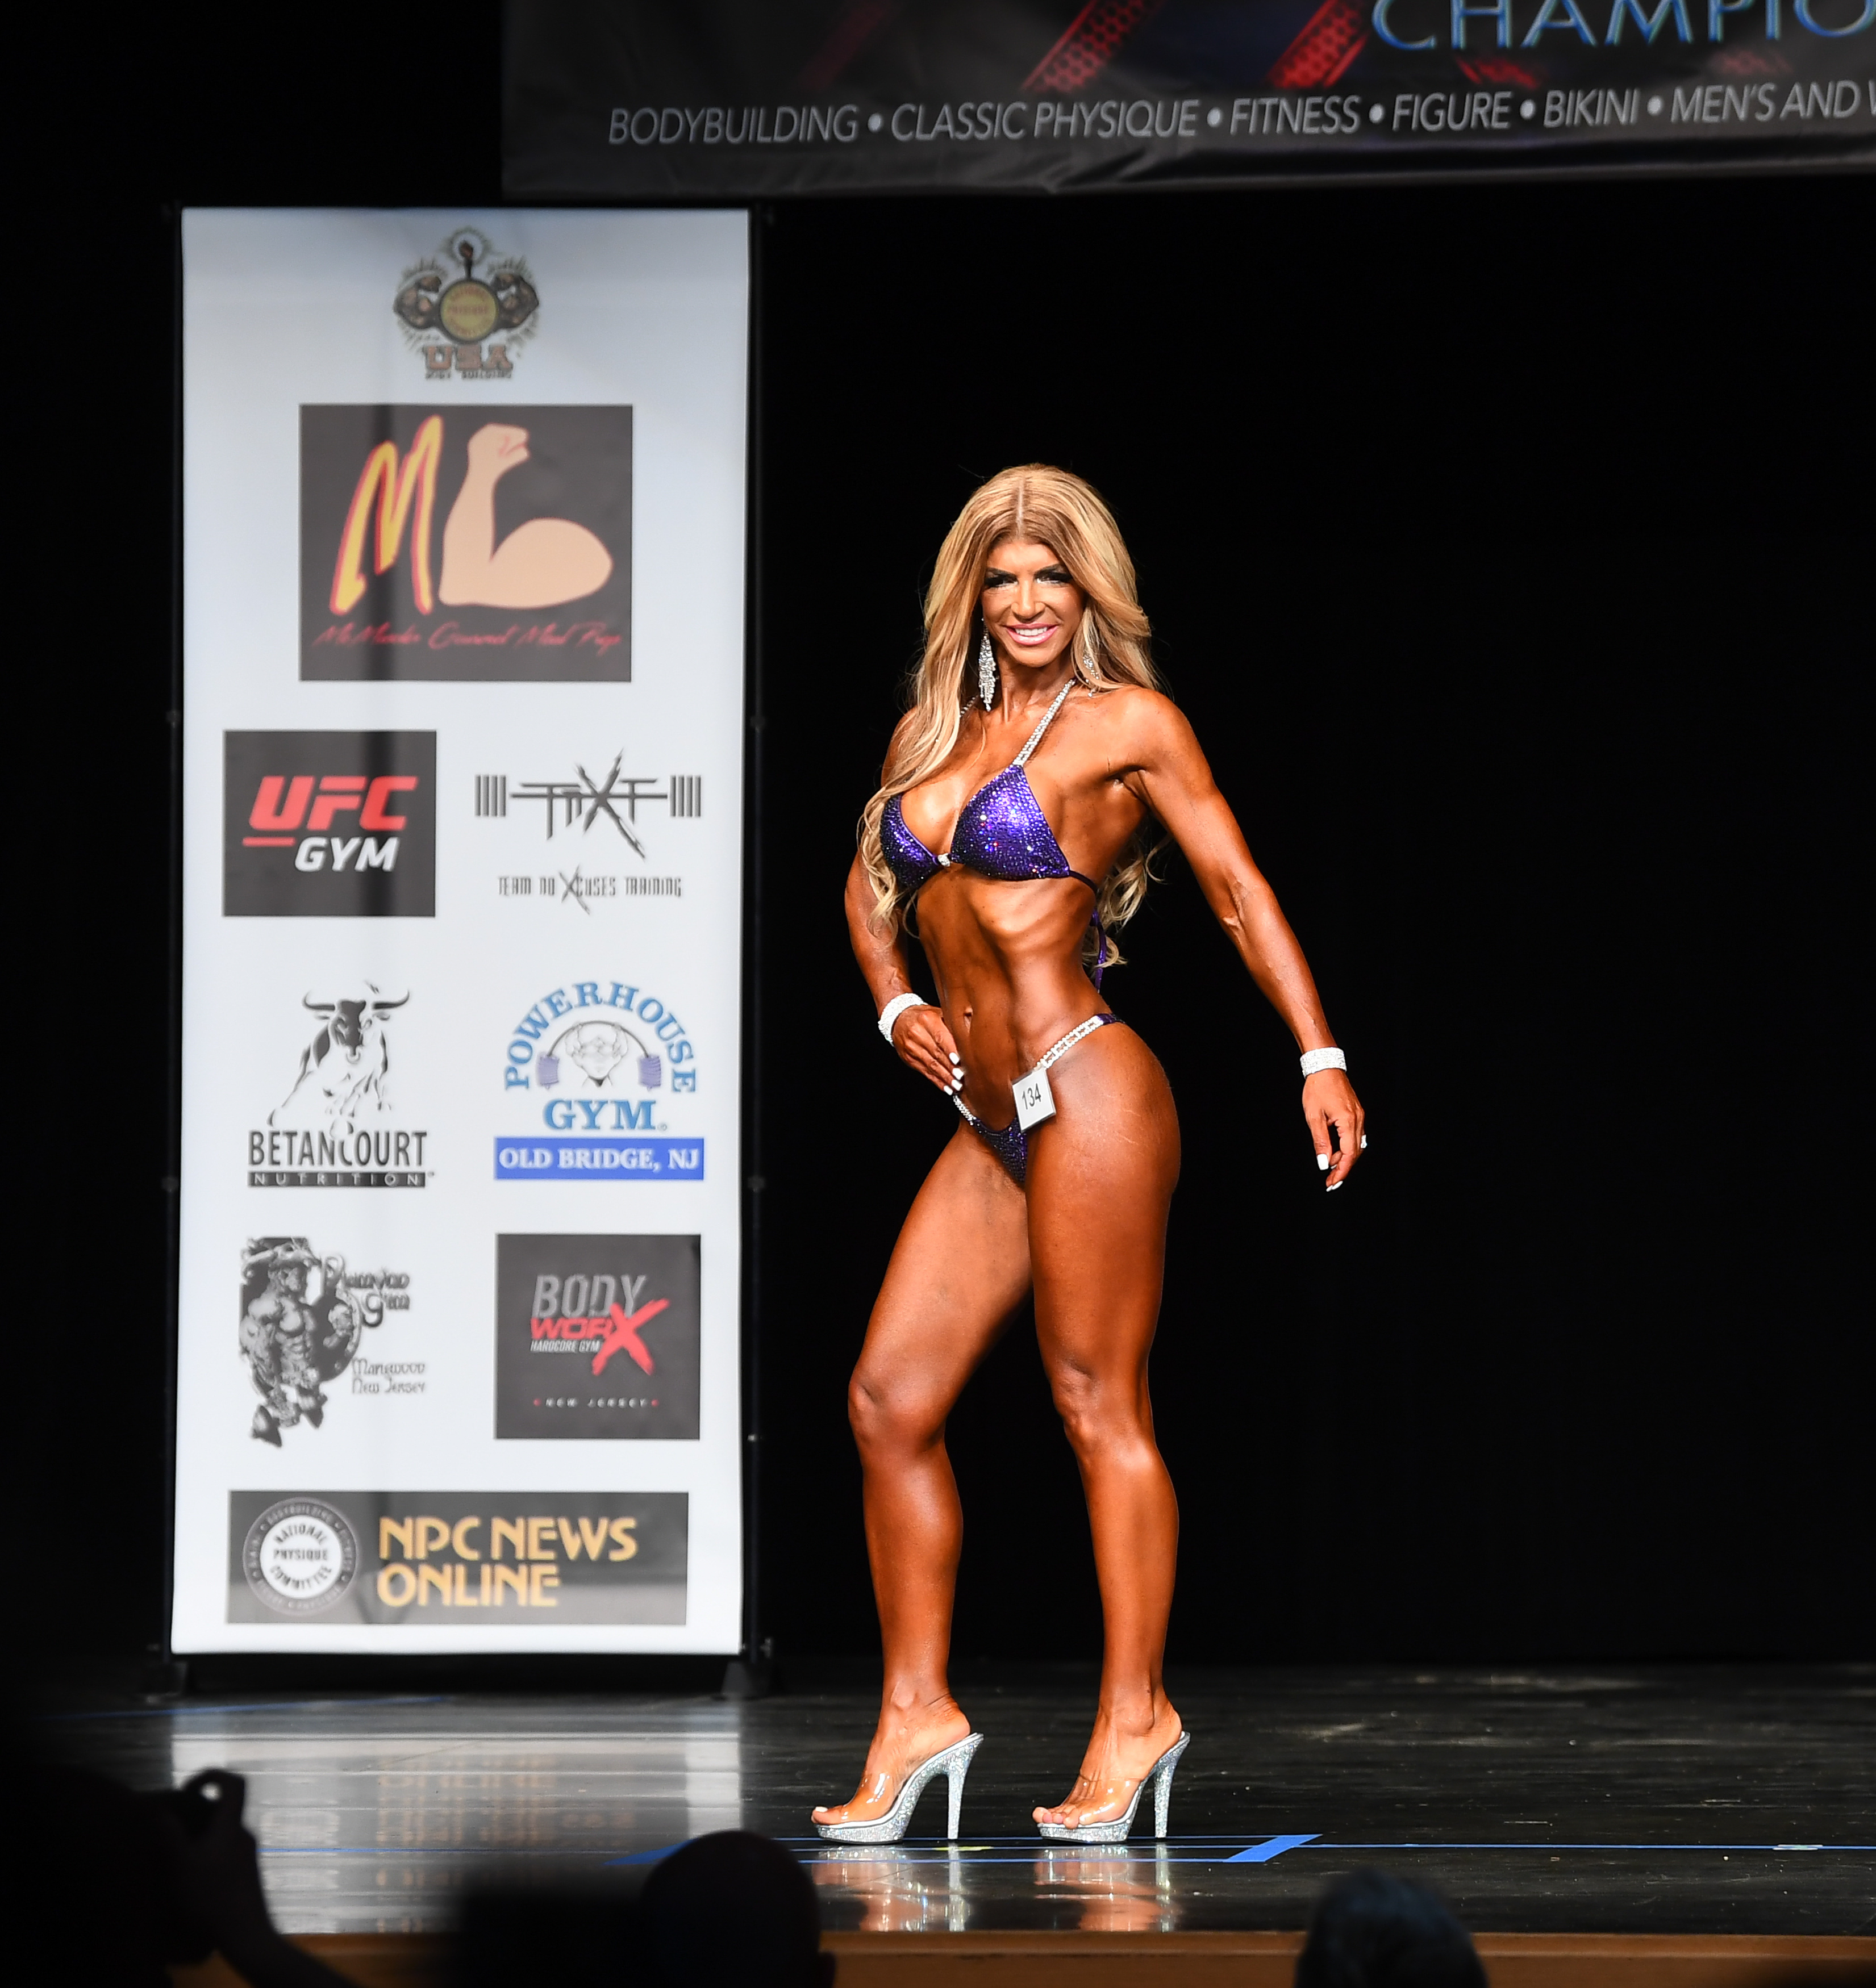 RHONJs-Teresa-Giudice-Shows-Off-Her-Muscles-At-Bodybuilding-Competition